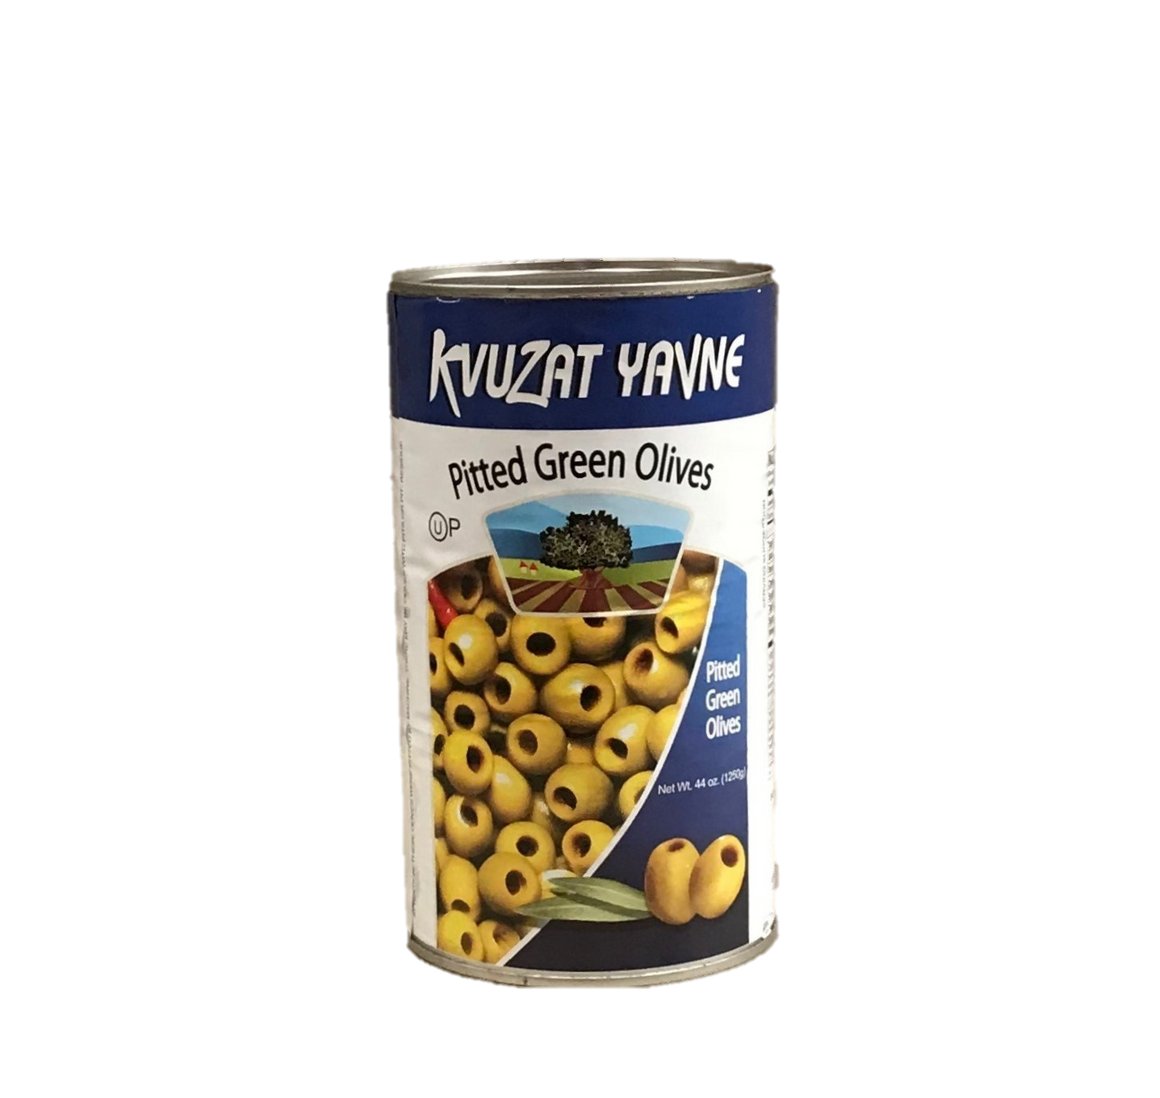 Kvuzat Yavne Green Olives Pitted 1.3Kg